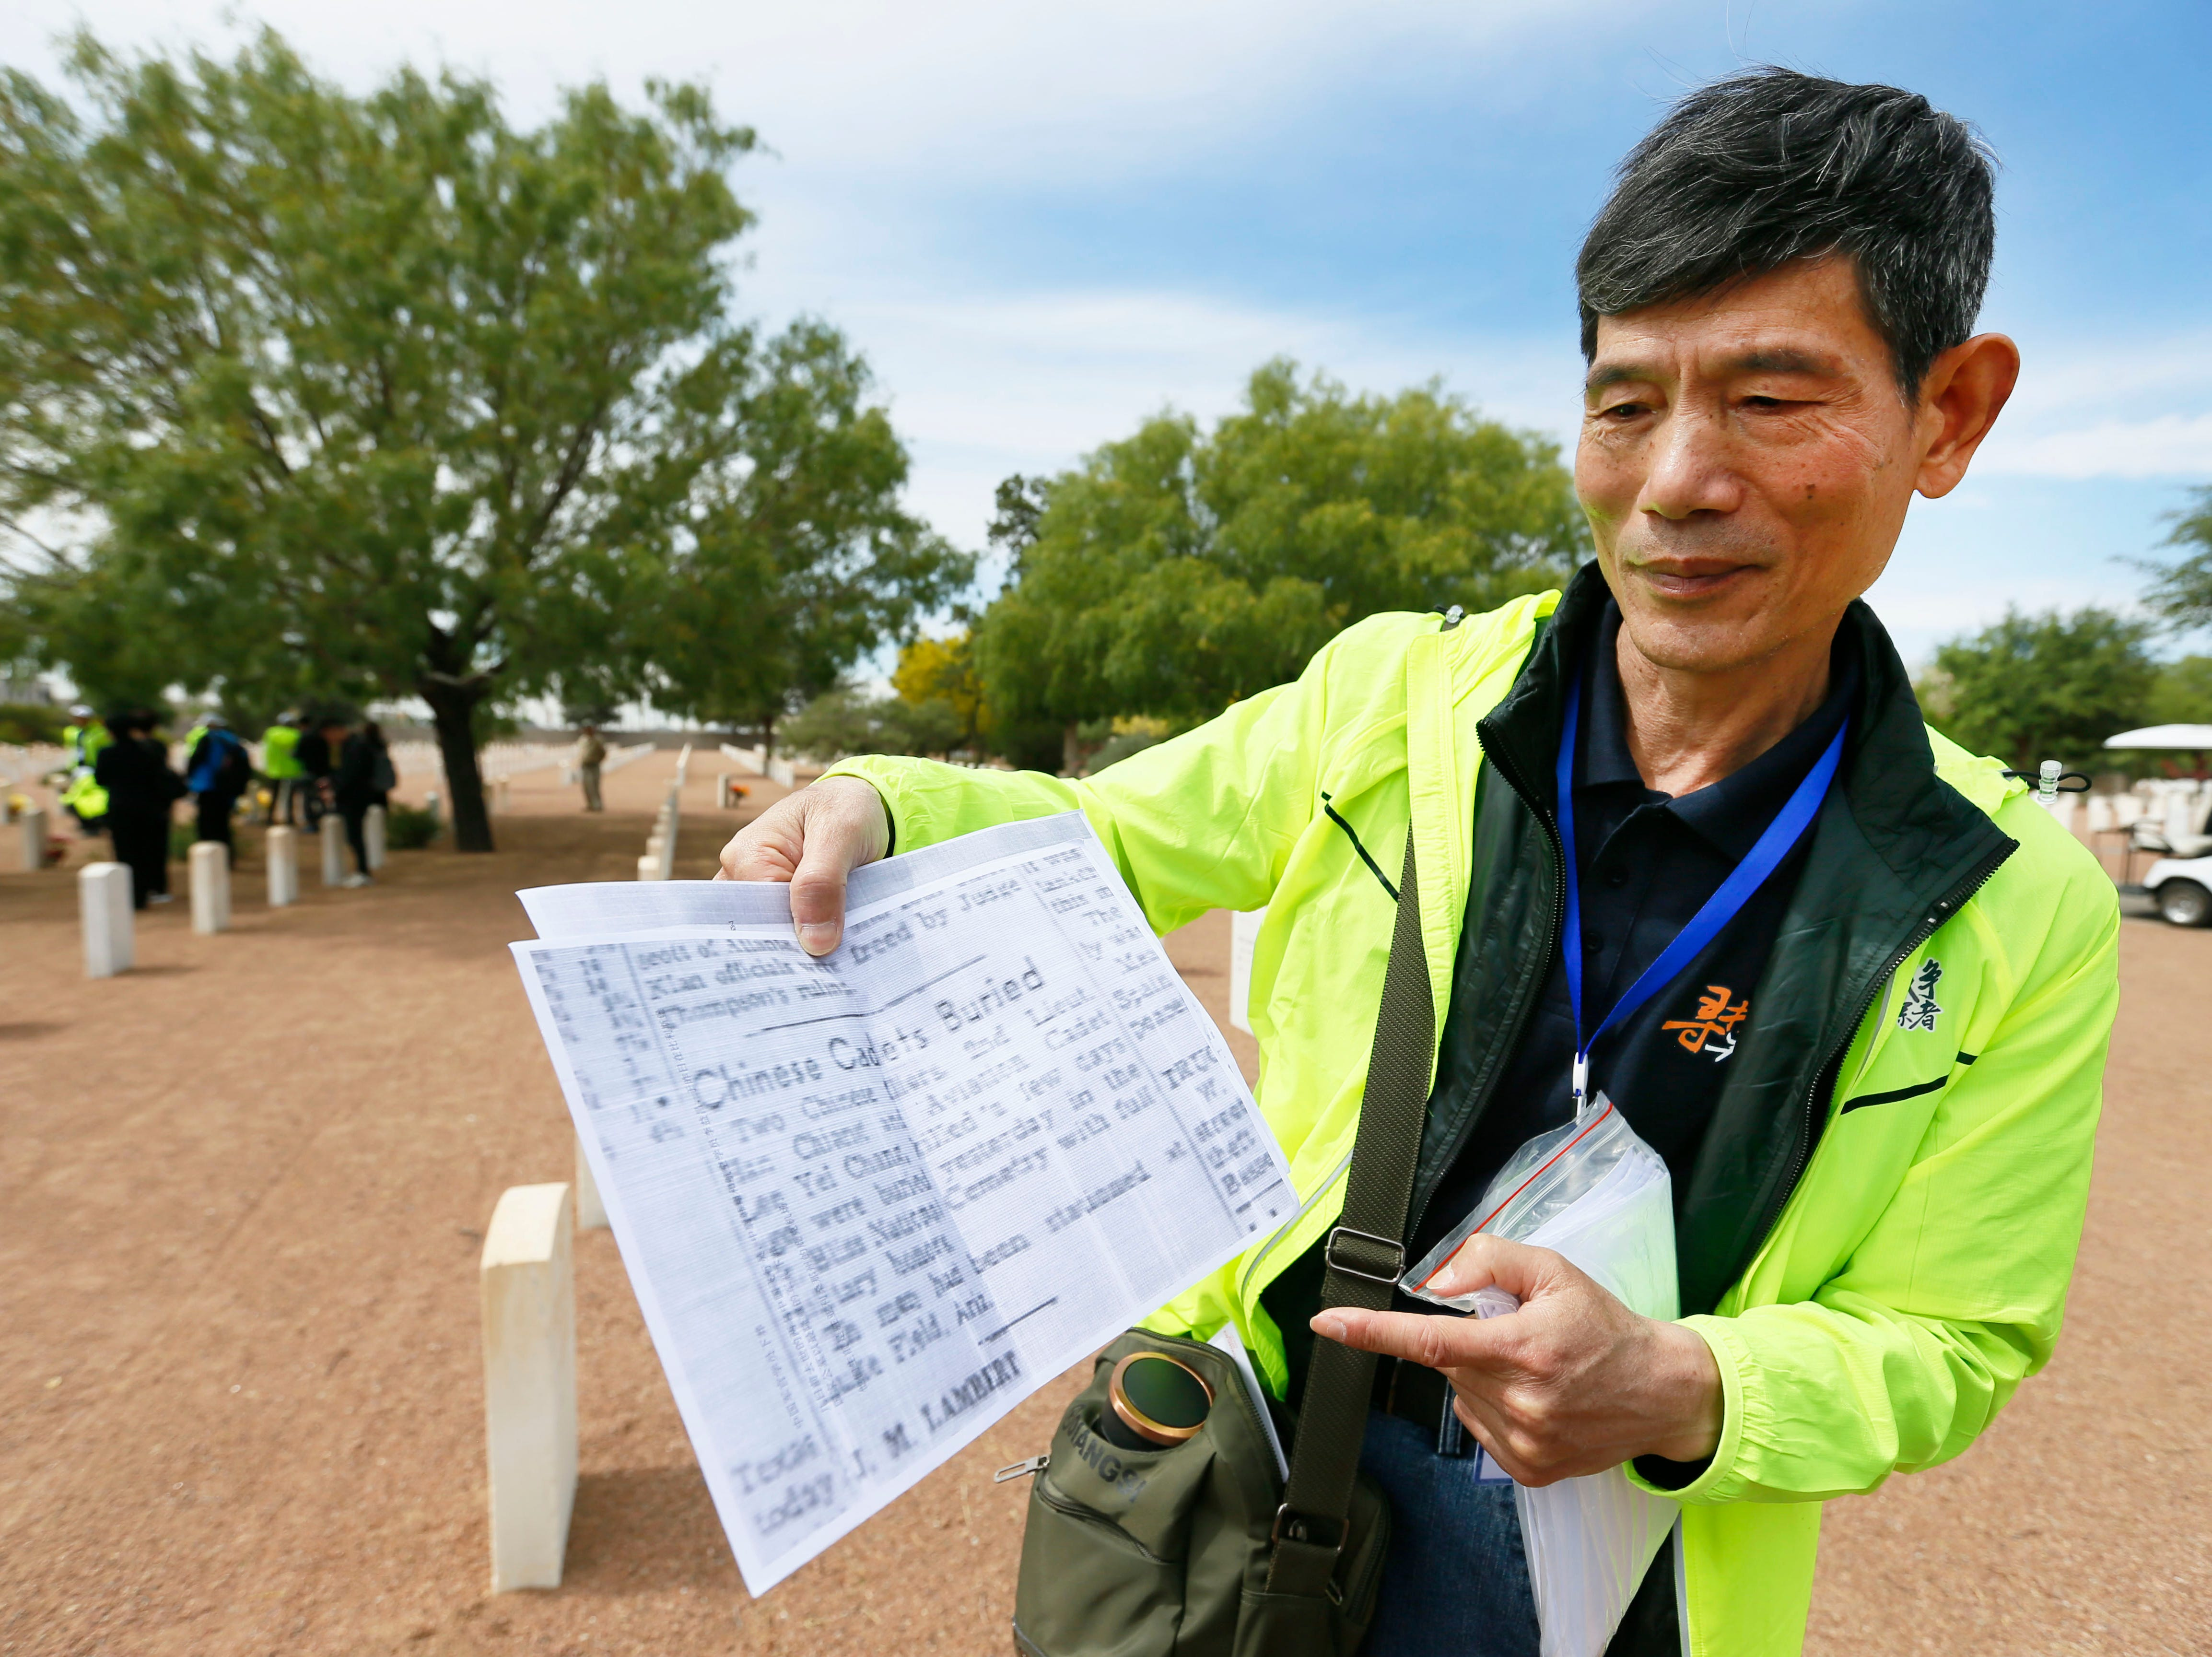 Li Shihua shows an El Paso Herald-Post article written about his great uncle Lee Yei-Chang that he found in archives Monday, May 13, at Fort Bliss National Cemetery. The article was written when Li Shihua's great uncle was buried in El Paso. The Hunan LongYue Peace Charity Development Center brought family members to El Paso to pay a special remembrance to their relatives who are amongst the 52 Chinese pilots who died in the U.S. during flight training in World War II.